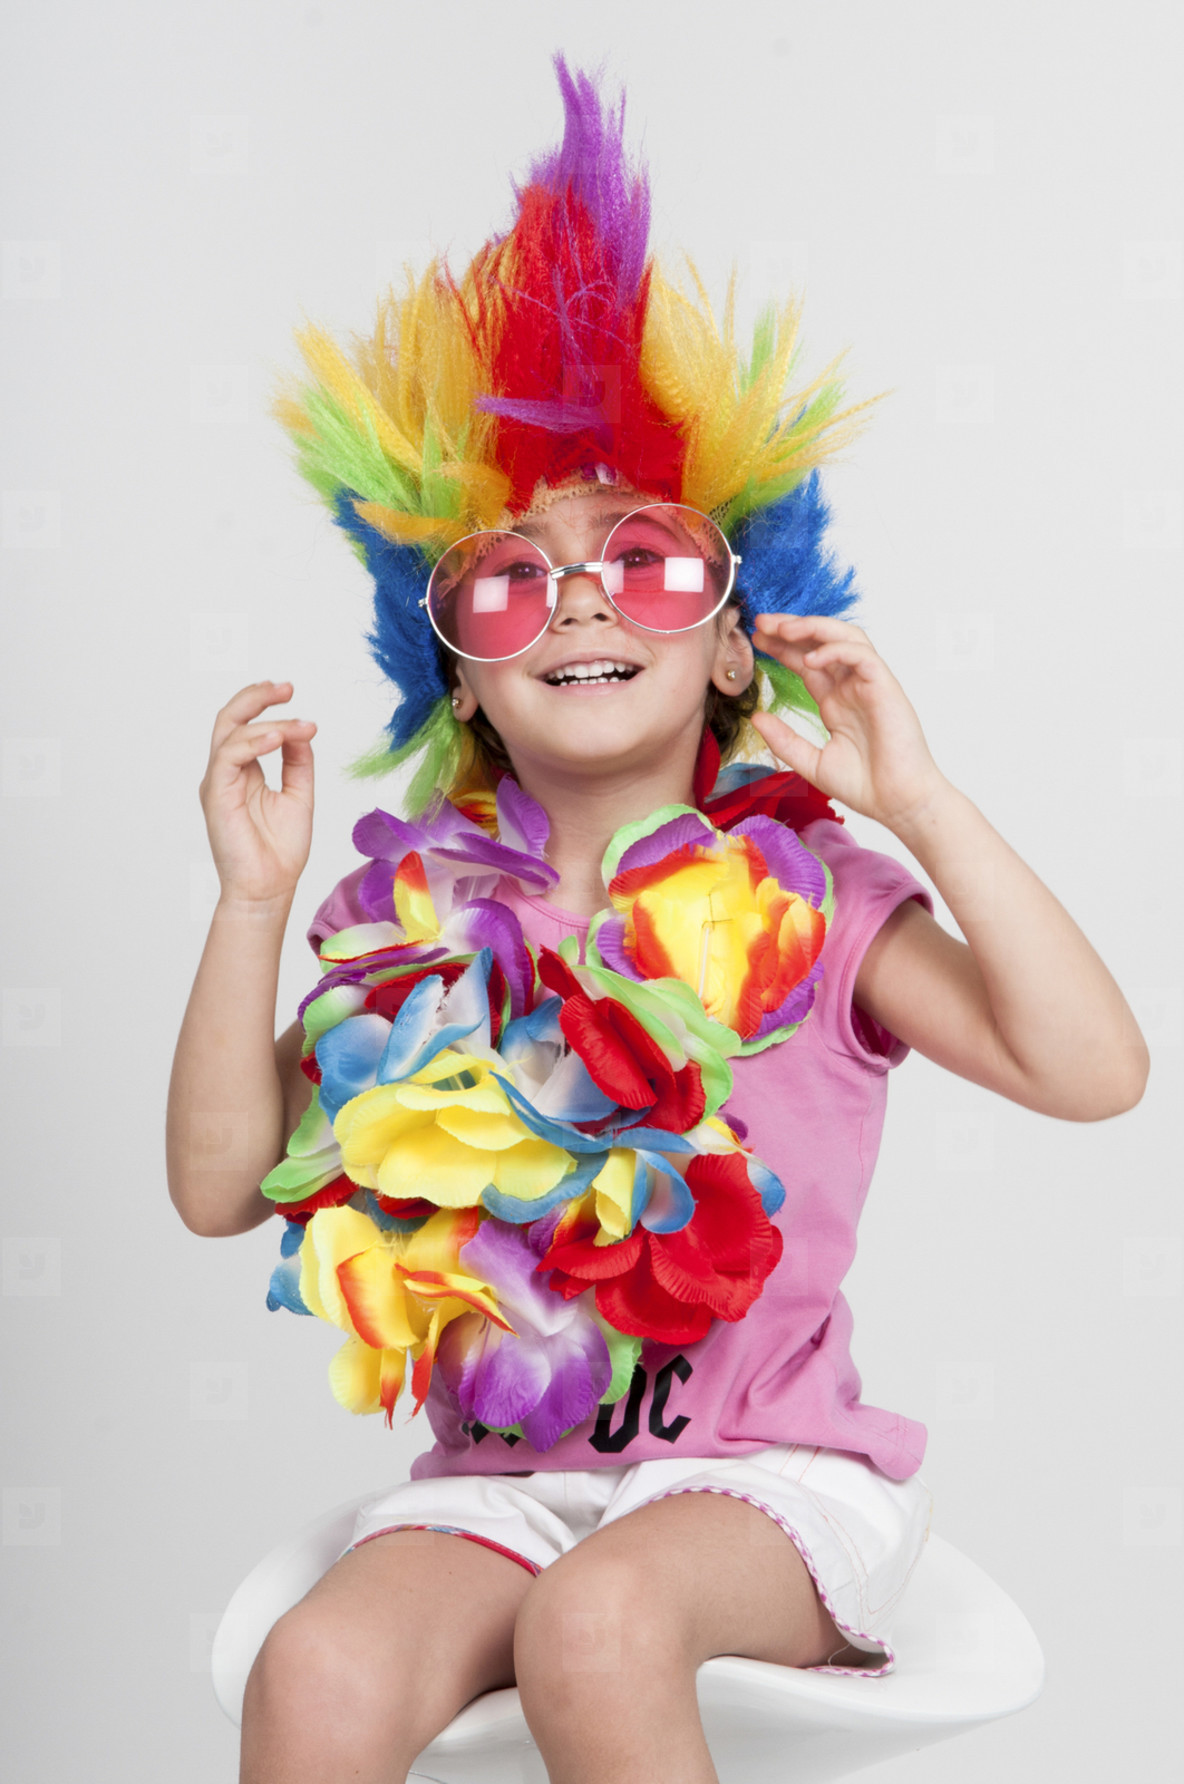 Funny little girl in disguise with wig and sunglasses